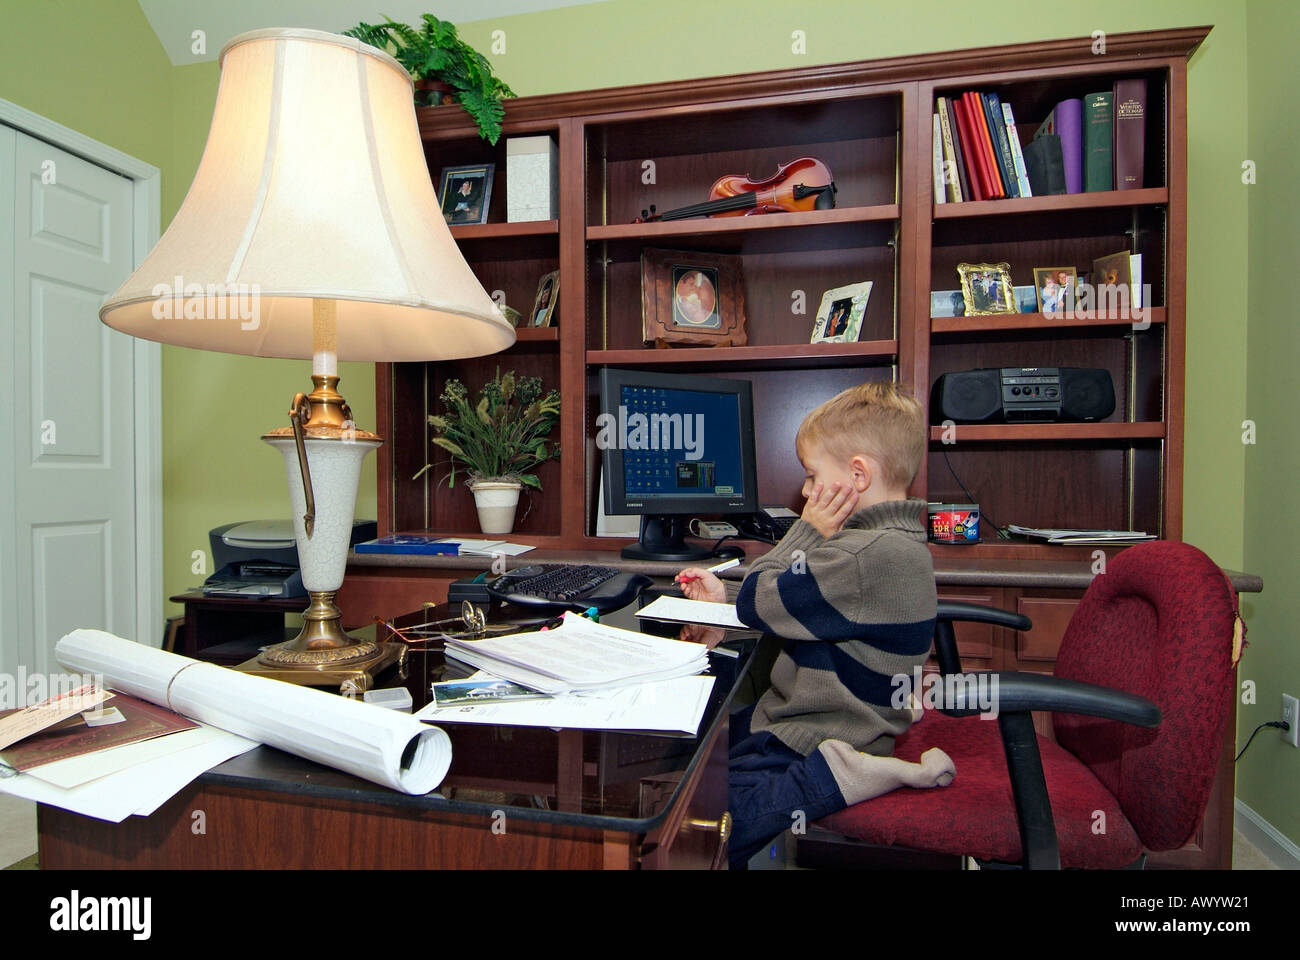 family home office. 5 Five Year Old Boy Works In The Family Home Office To Make A Birthday Card For His Mothers